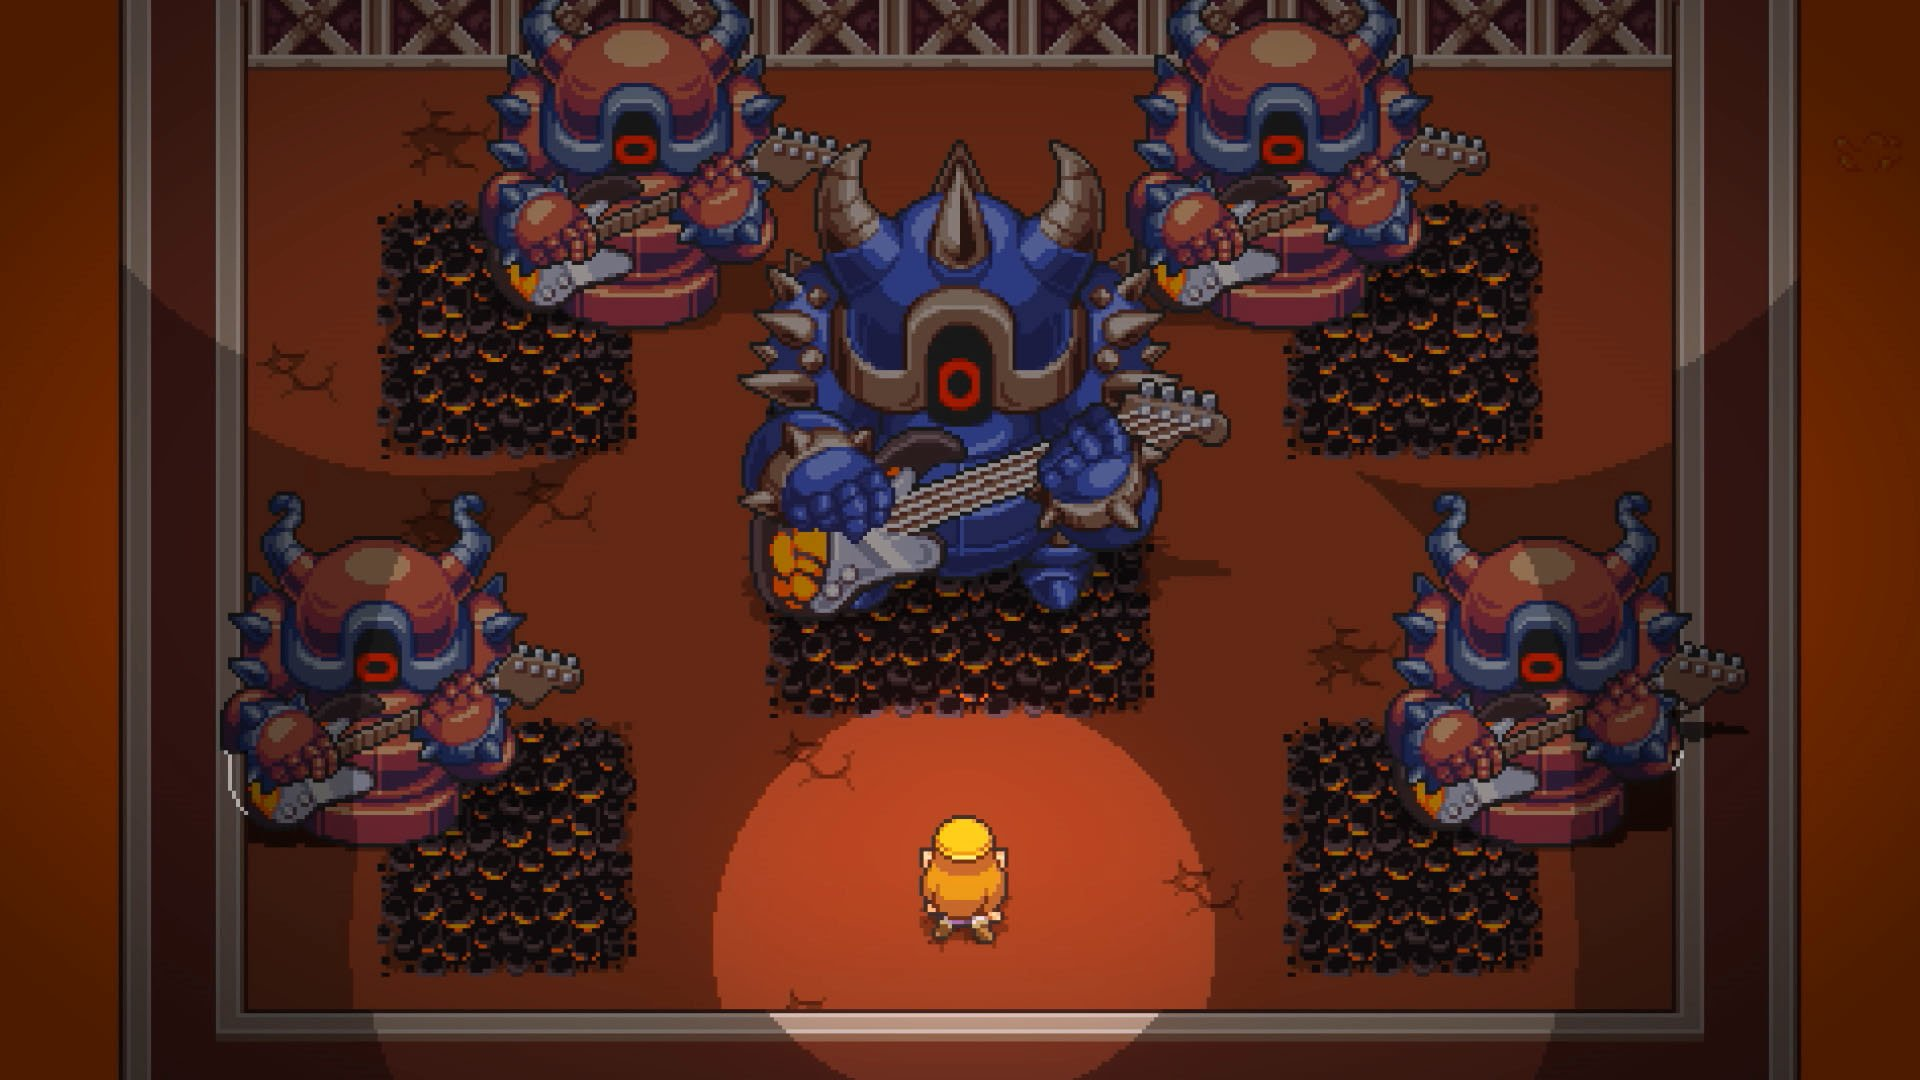 Cadence of Hyrule: the crypt of NecroDancer Featuring the